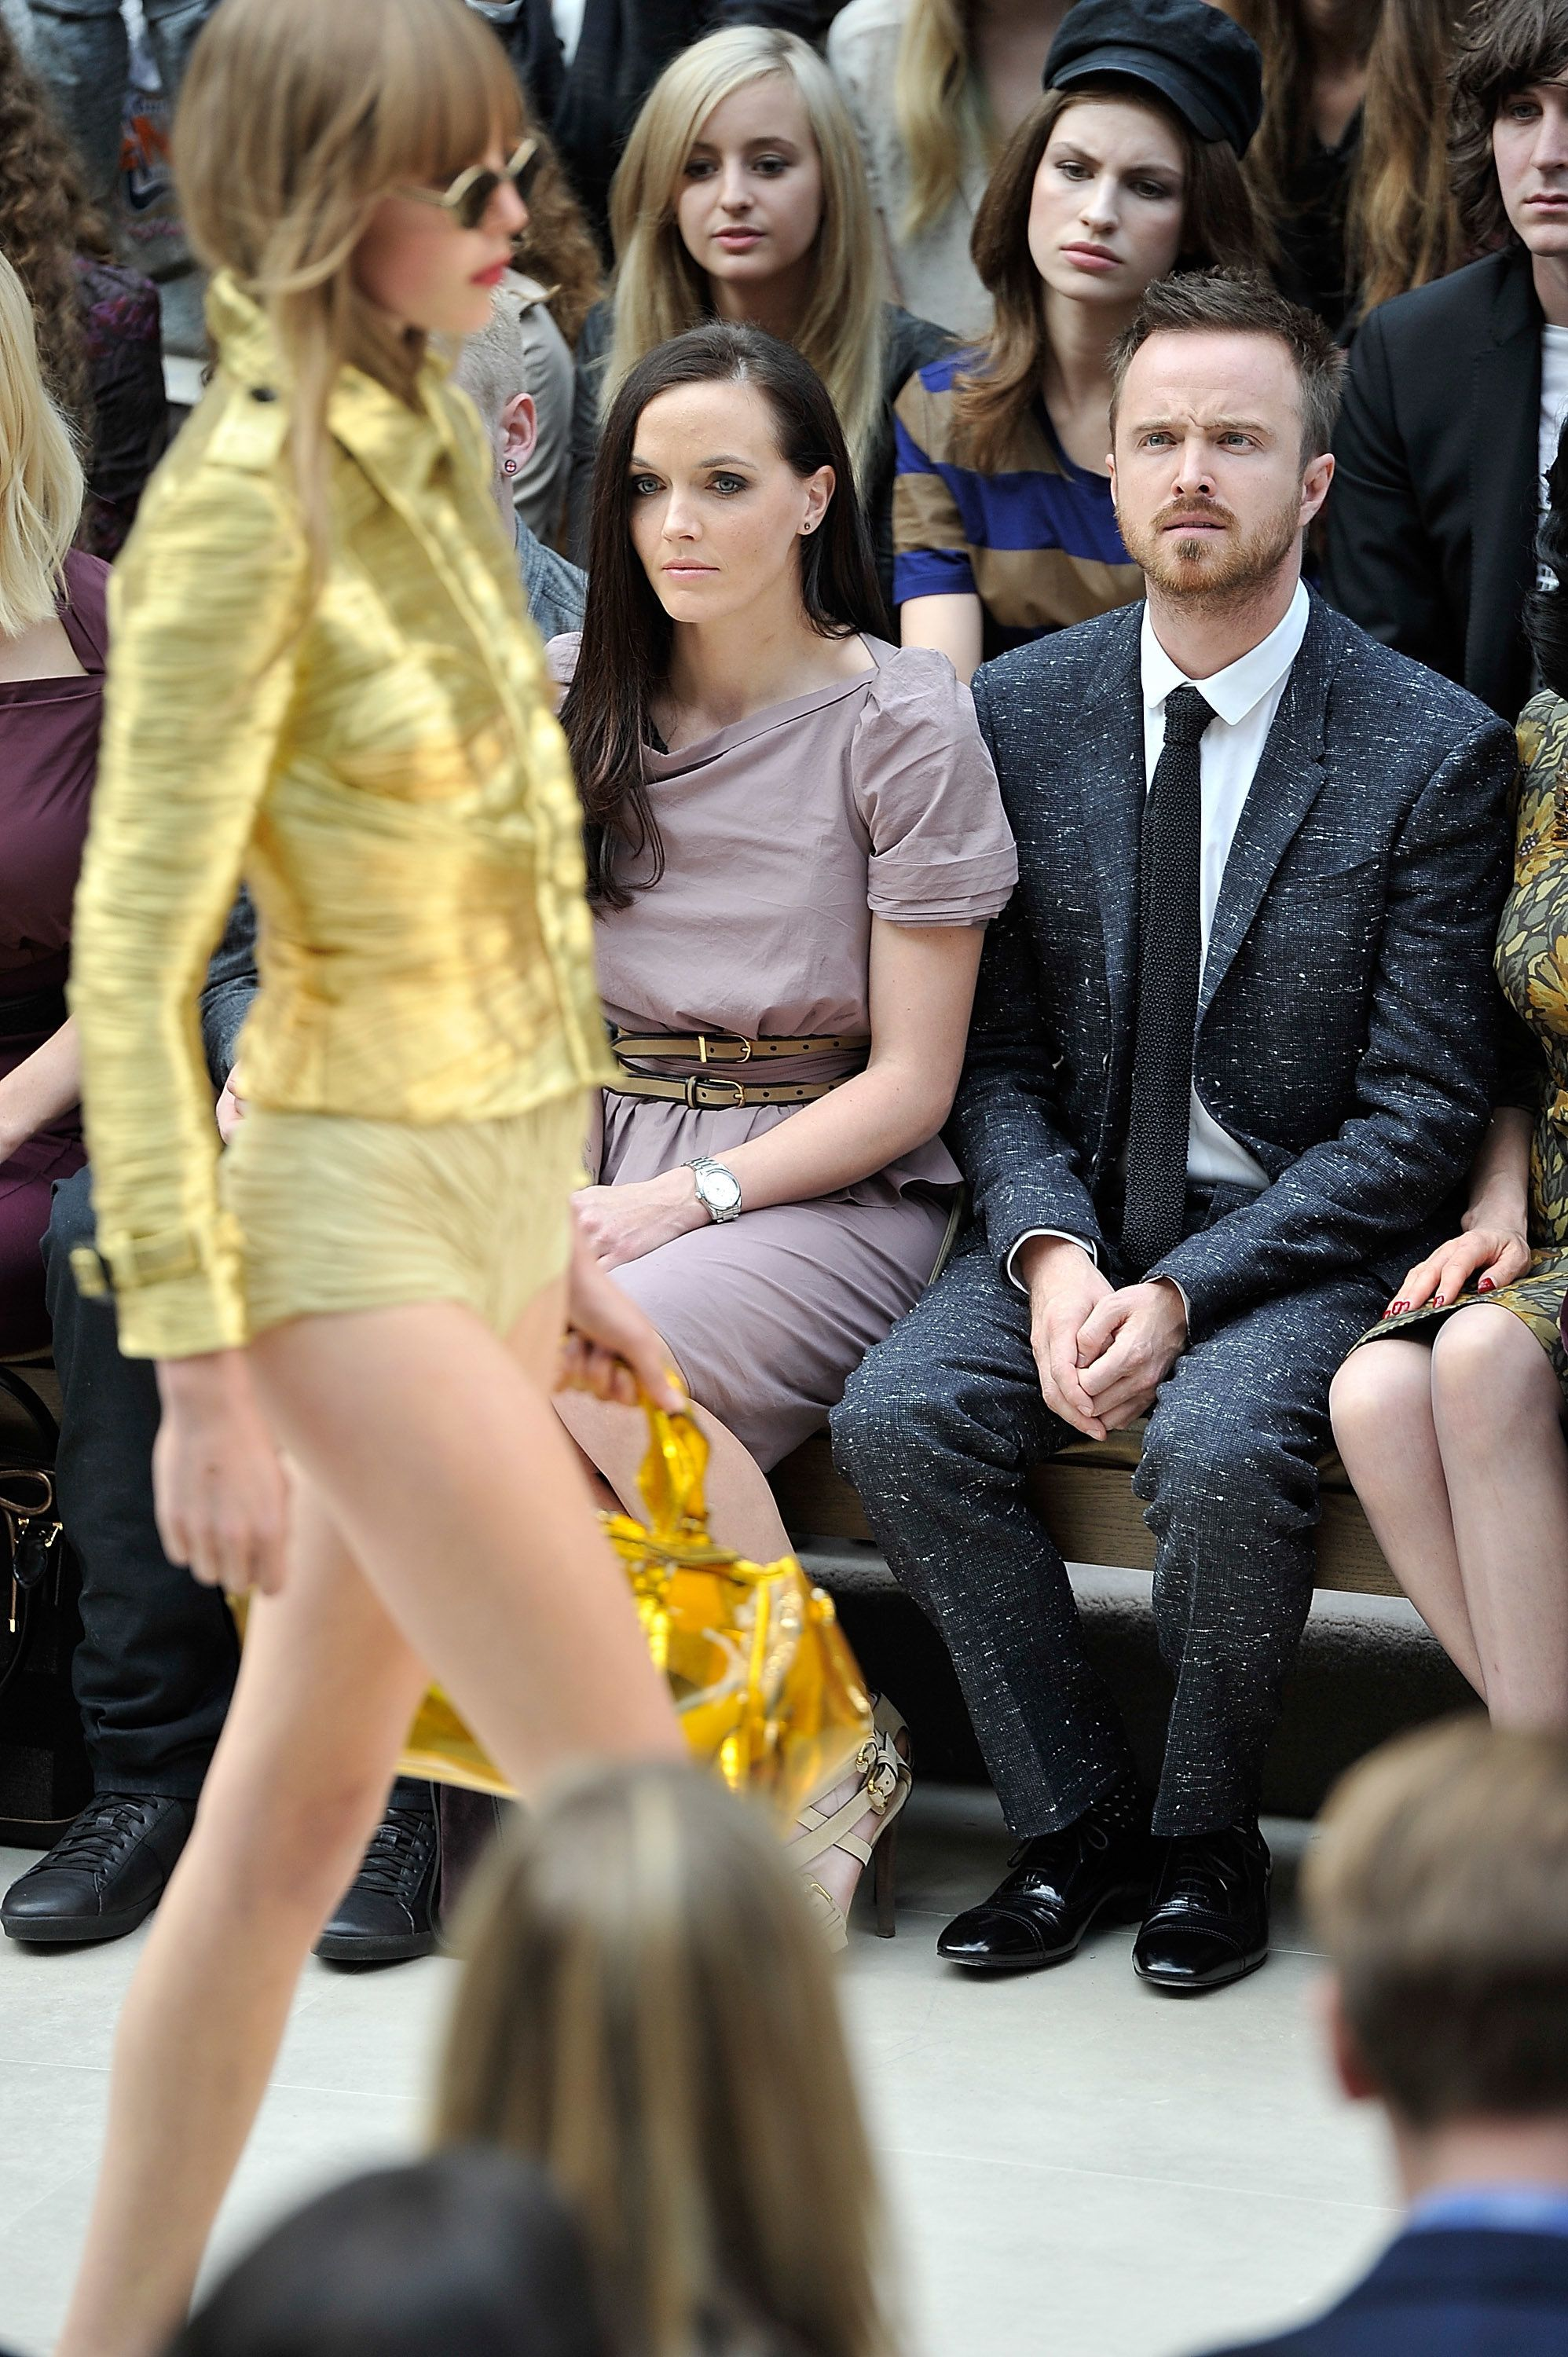 LONDON, ENGLAND - SEPTEMBER 17:  (L-R)  Victoria Pendleton and Aaron Paul, attend the Burberry Spring Summer 2013 Womenswear Show - Front Row at Kensington Gardens on September 17, 2012 in London, England.  (Photo by Gareth Cattermole/Getty Images for Burberry)